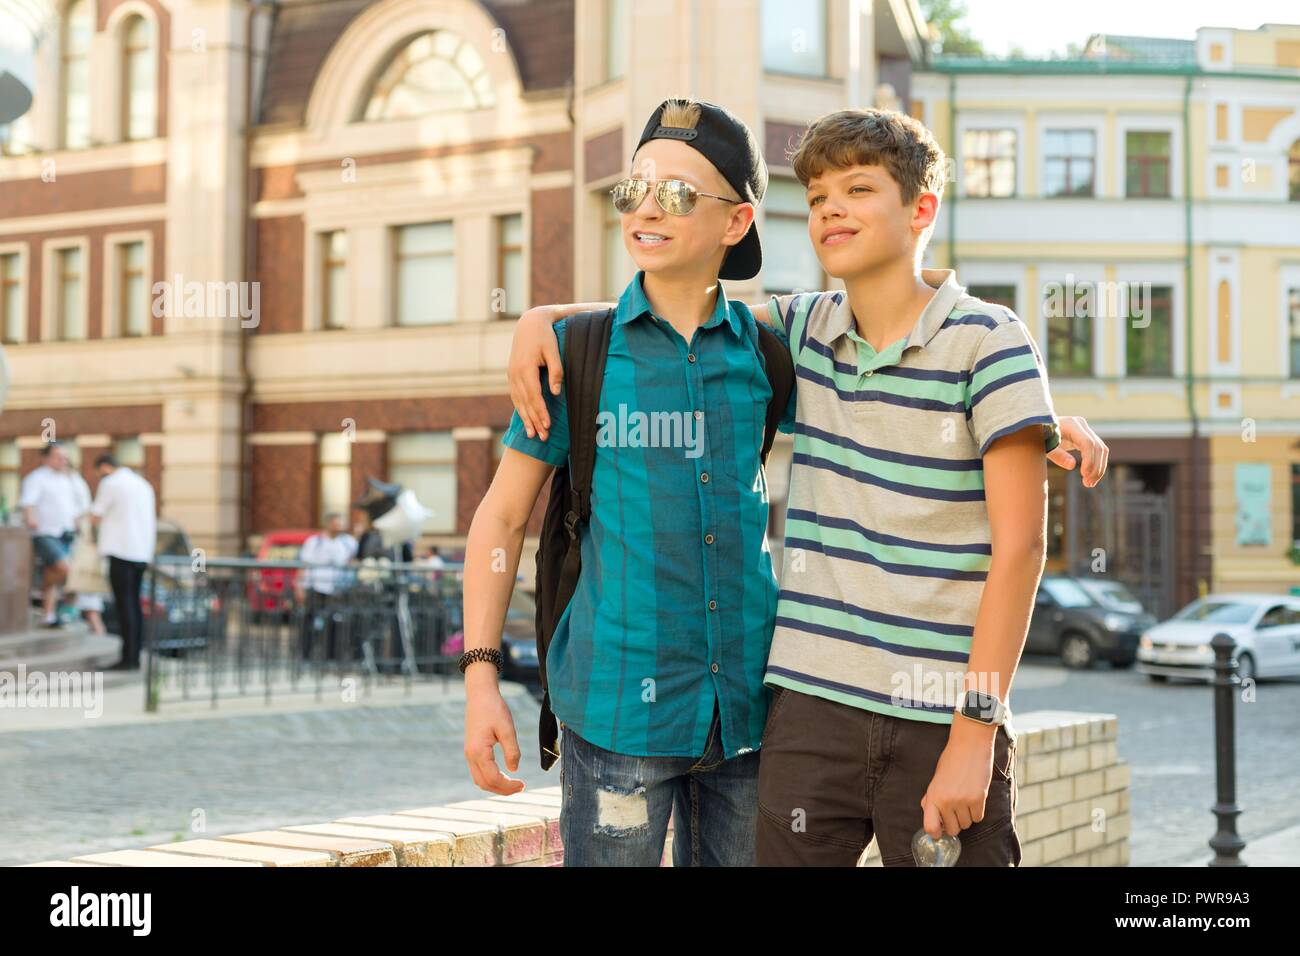 The friendship and communication of two teenage boys is 13, 14 years old, city street background. - Stock Image